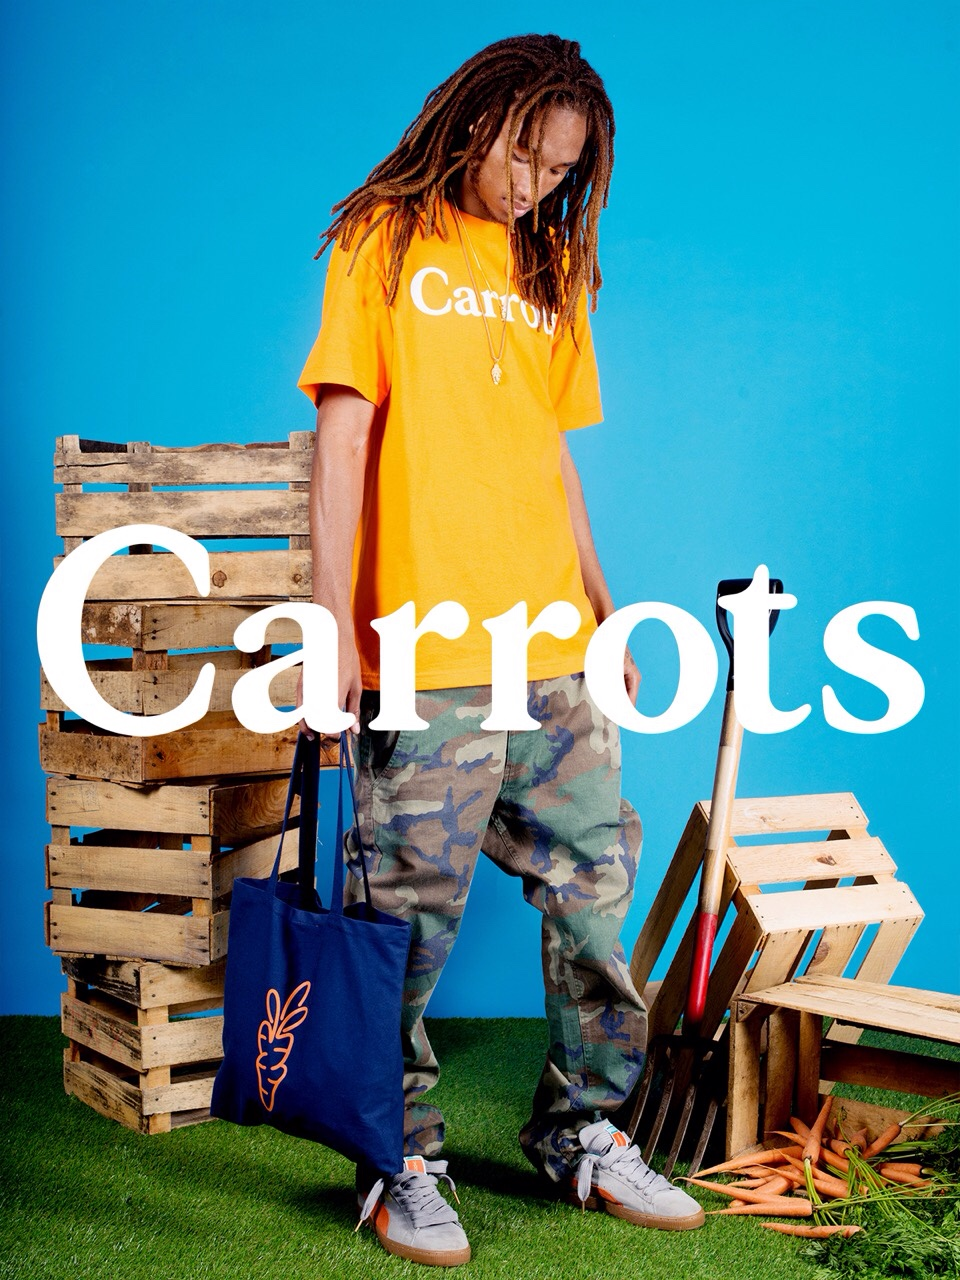 Navy Carrots Tote bag available in-store or via phone order.